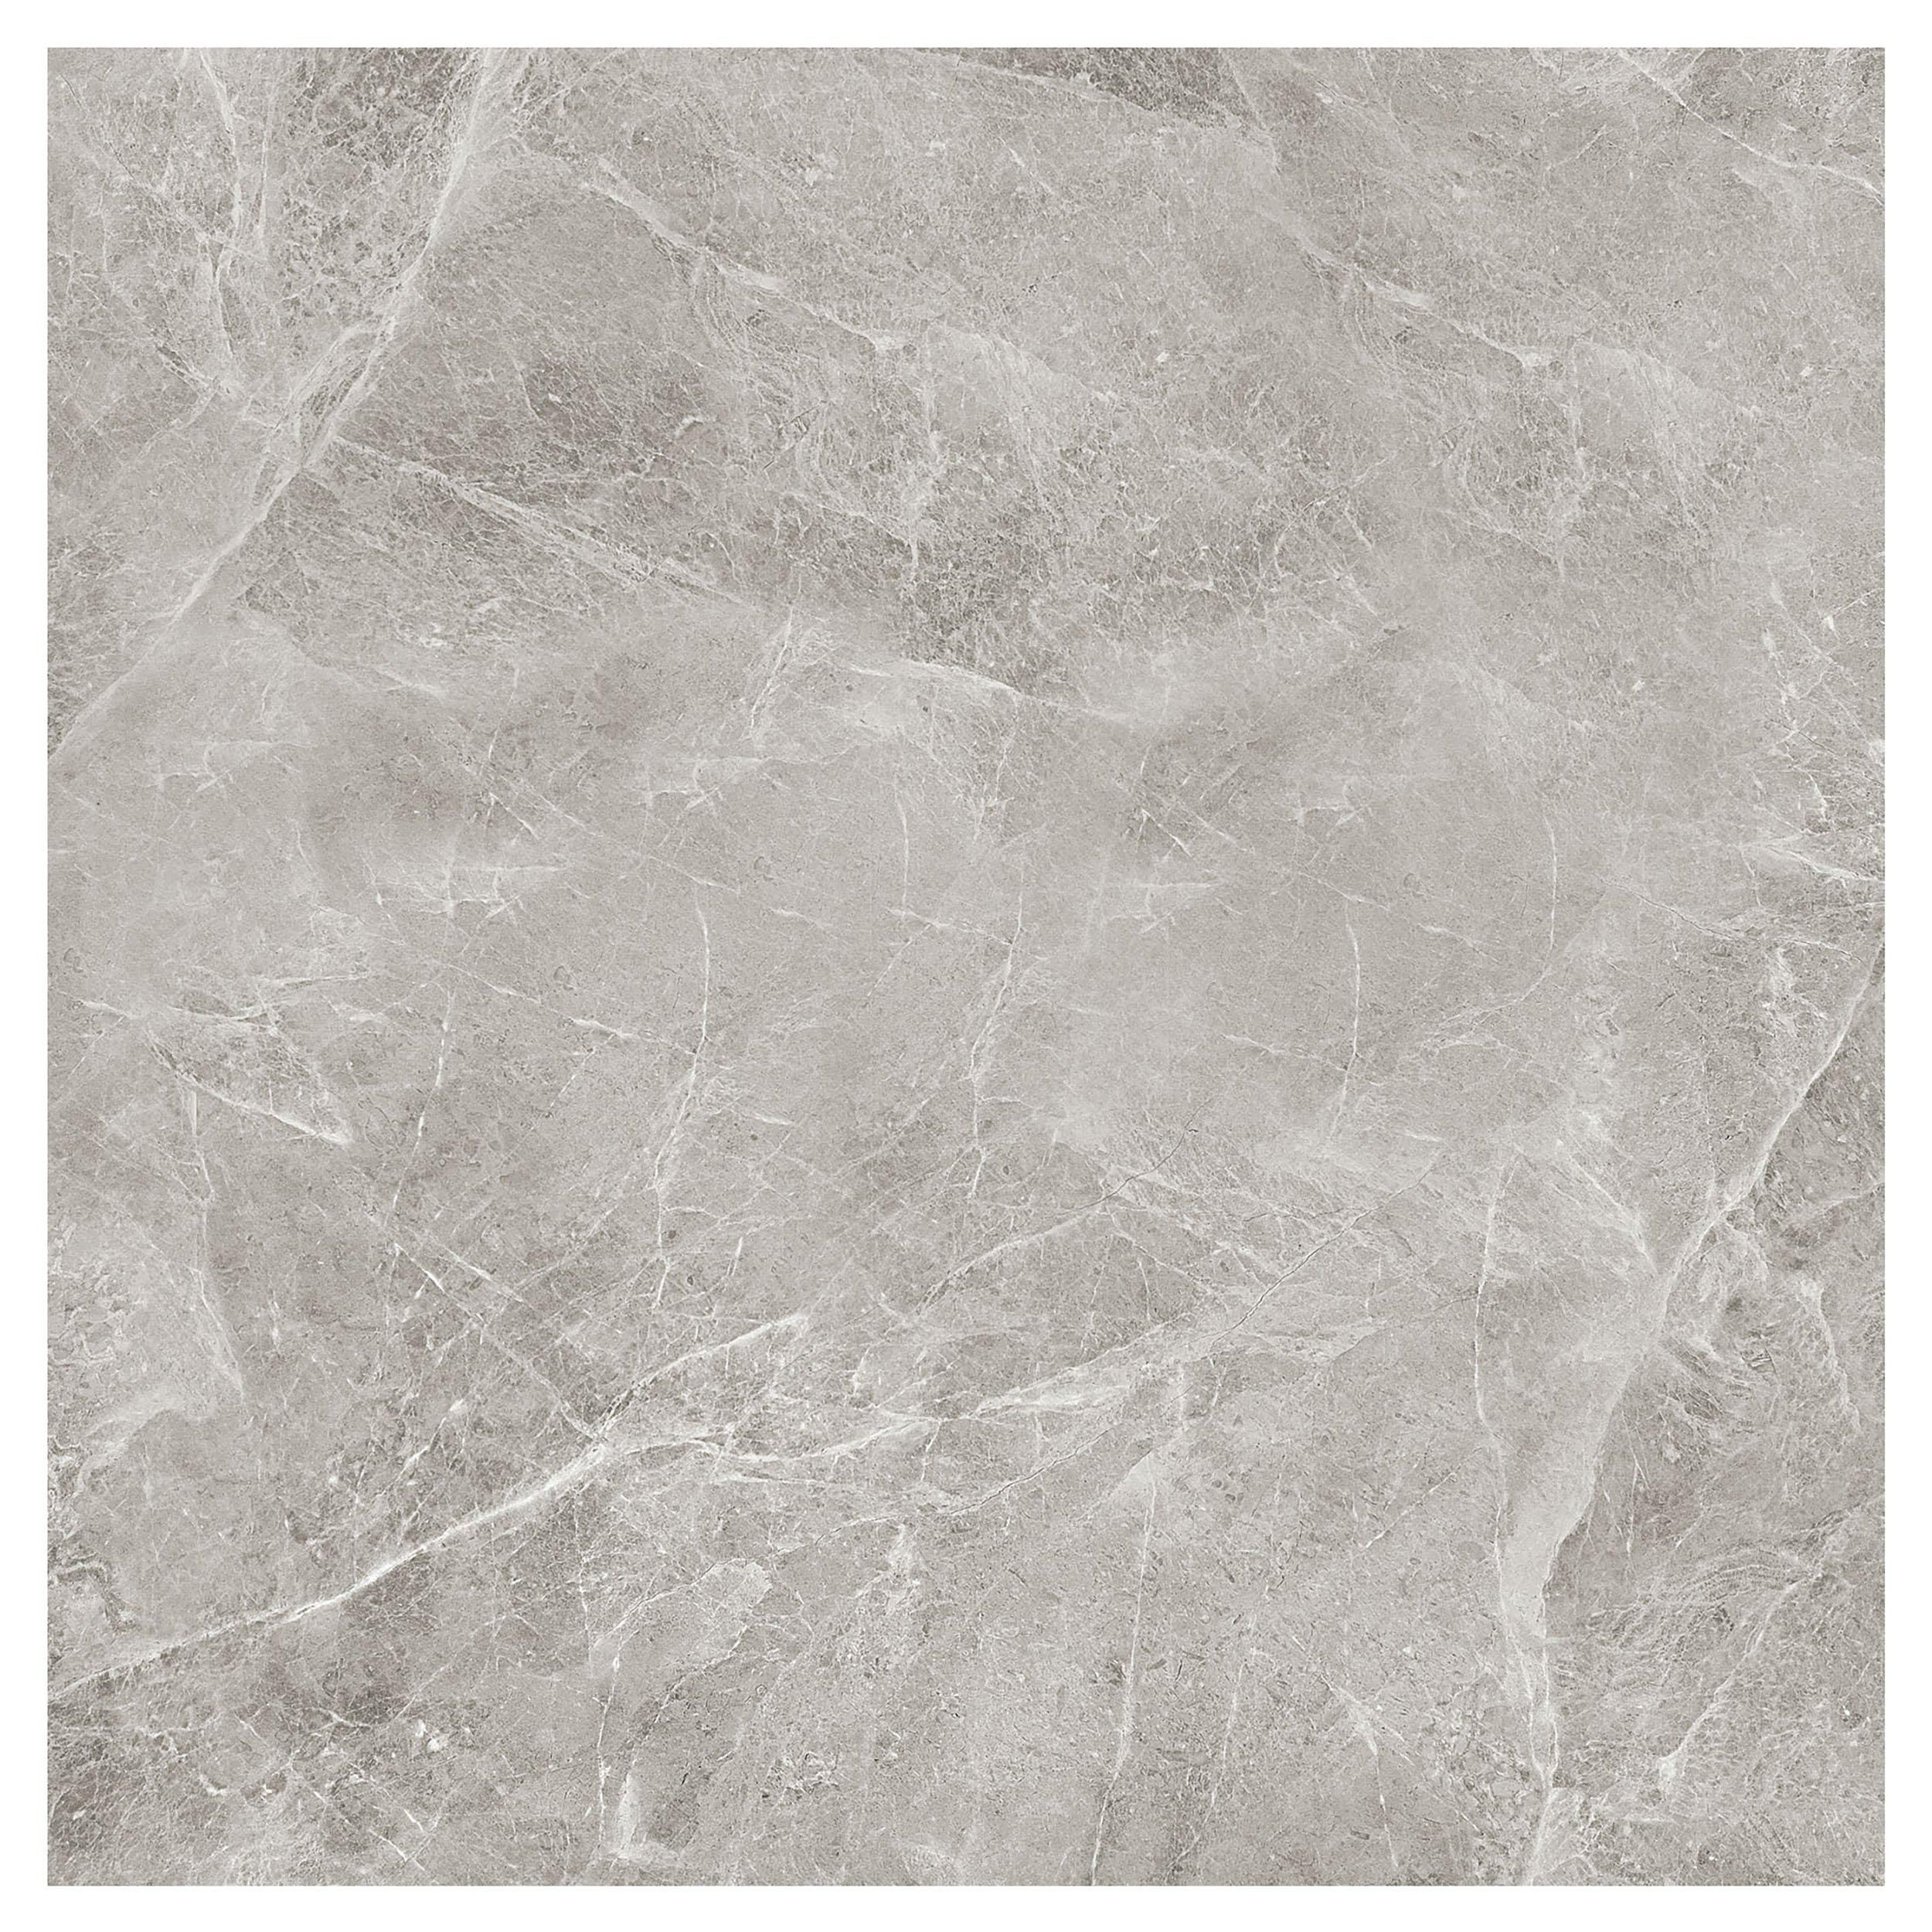 Laurento Gray Polished Porcelain Tile In 2020 Polished Porcelain Tiles Grey Polished Porcelain Tiles Porcelain Tile